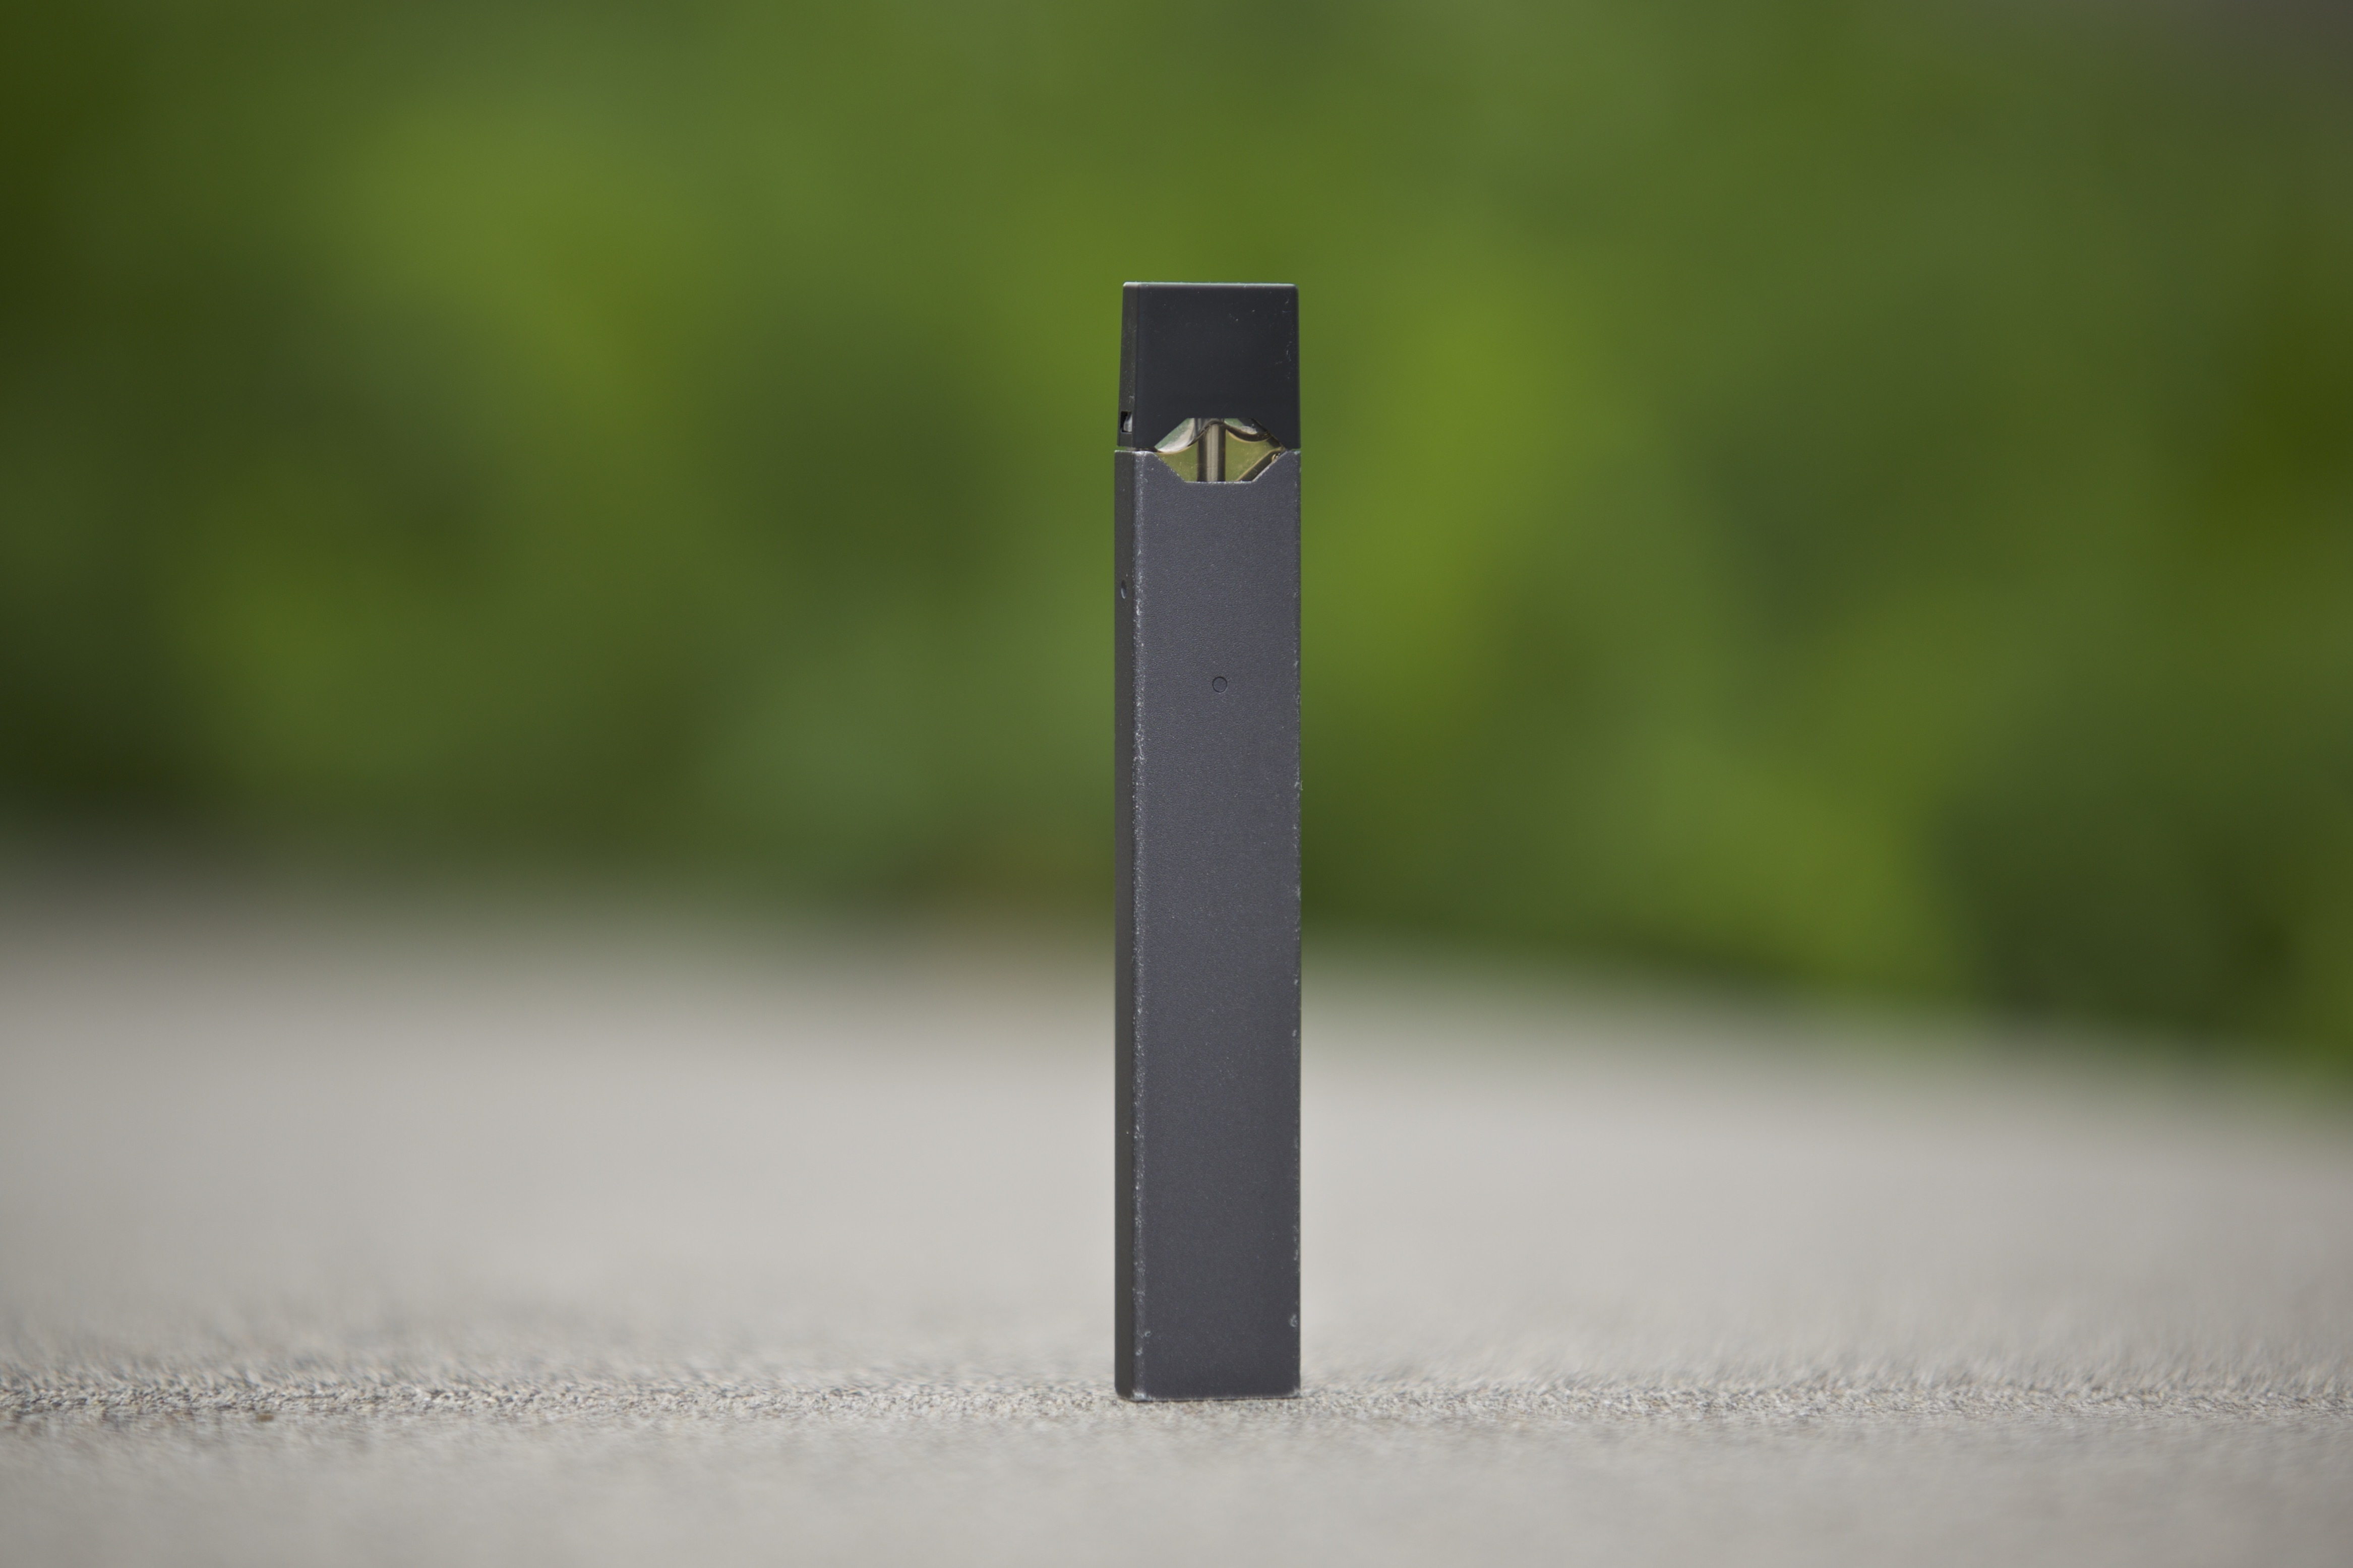 This April 16, 2019 photo shows a Juul vape pen in Vancouver, Wash. The company's rise coincided with an explosion of underage vaping by teens. As regulators and lawmakers scramble for solutions, few are talking about Juul's defining feature: a high-nicot